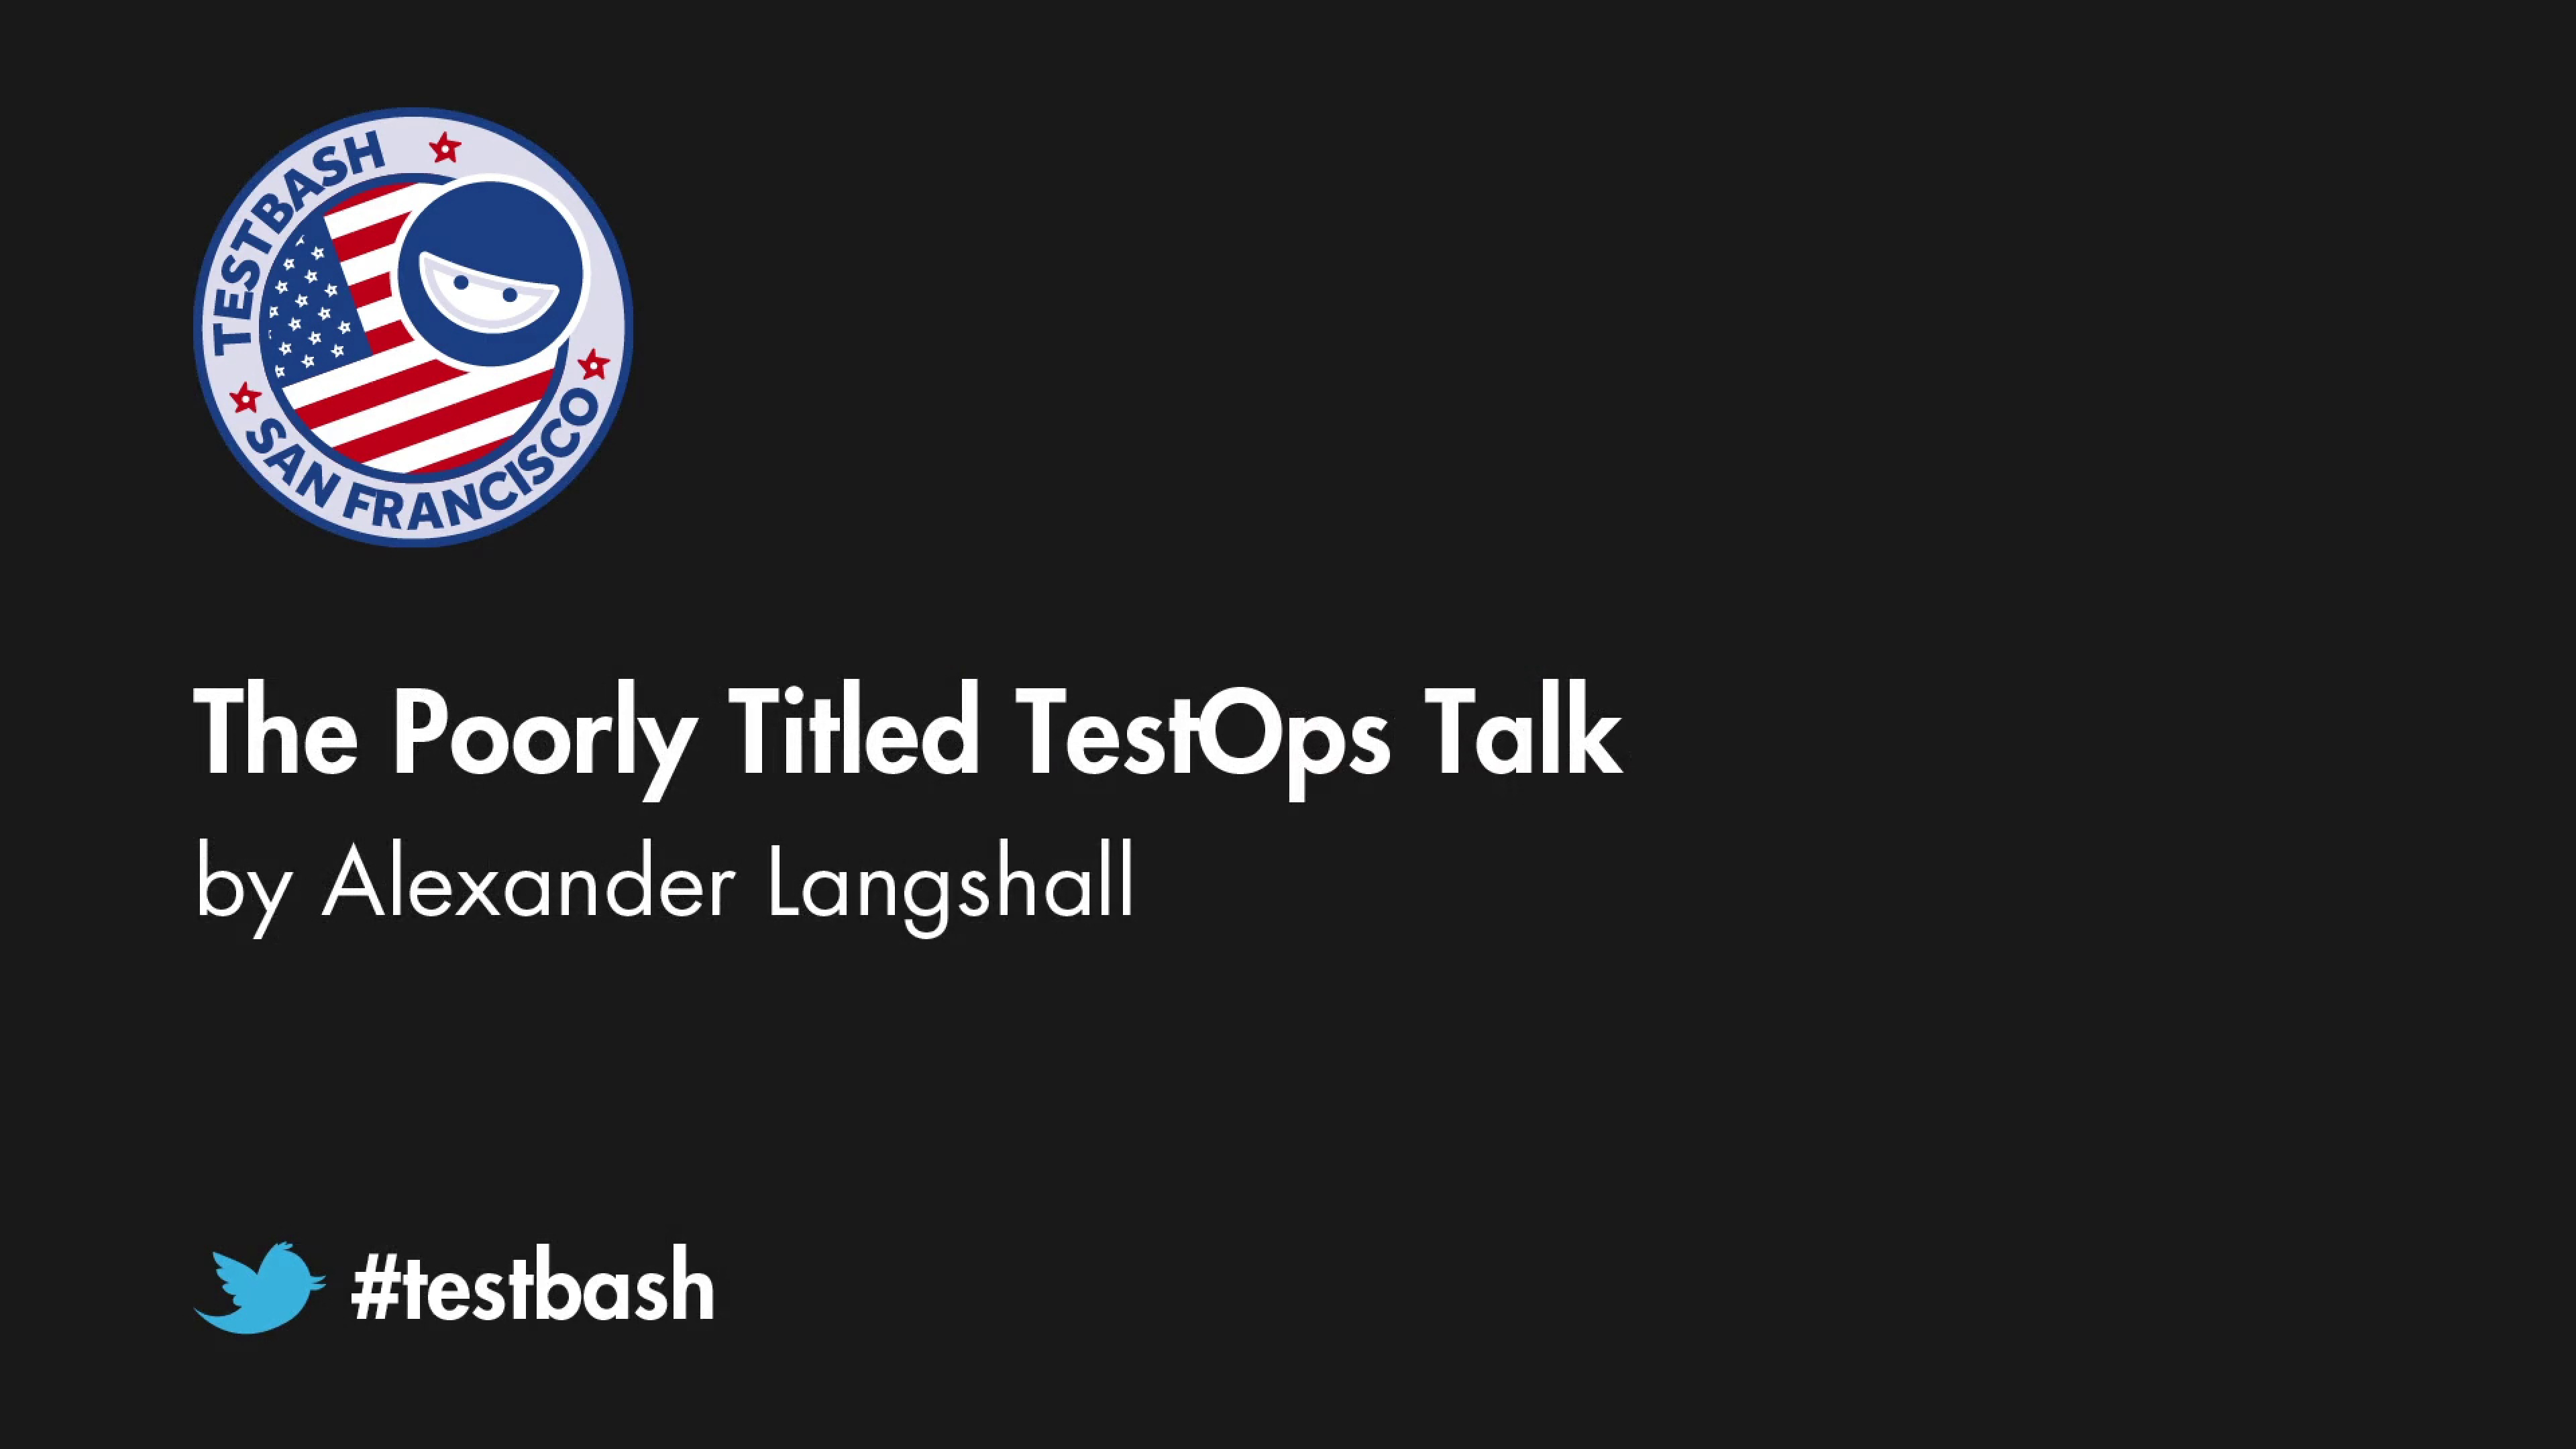 The Poorly Titled TestOps Talk - Alex Langshall